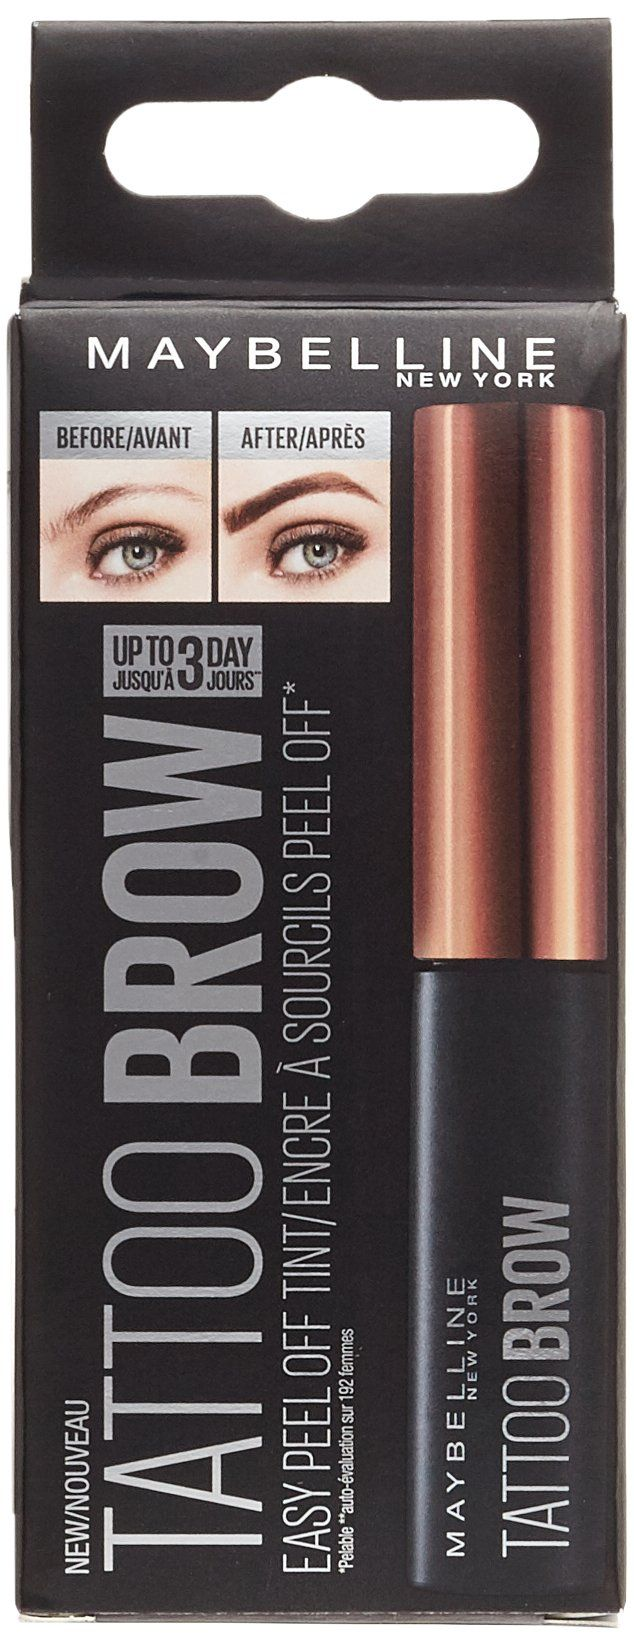 Maybelline New York Tattoo Brow Tint Medium Brown 4.9ml